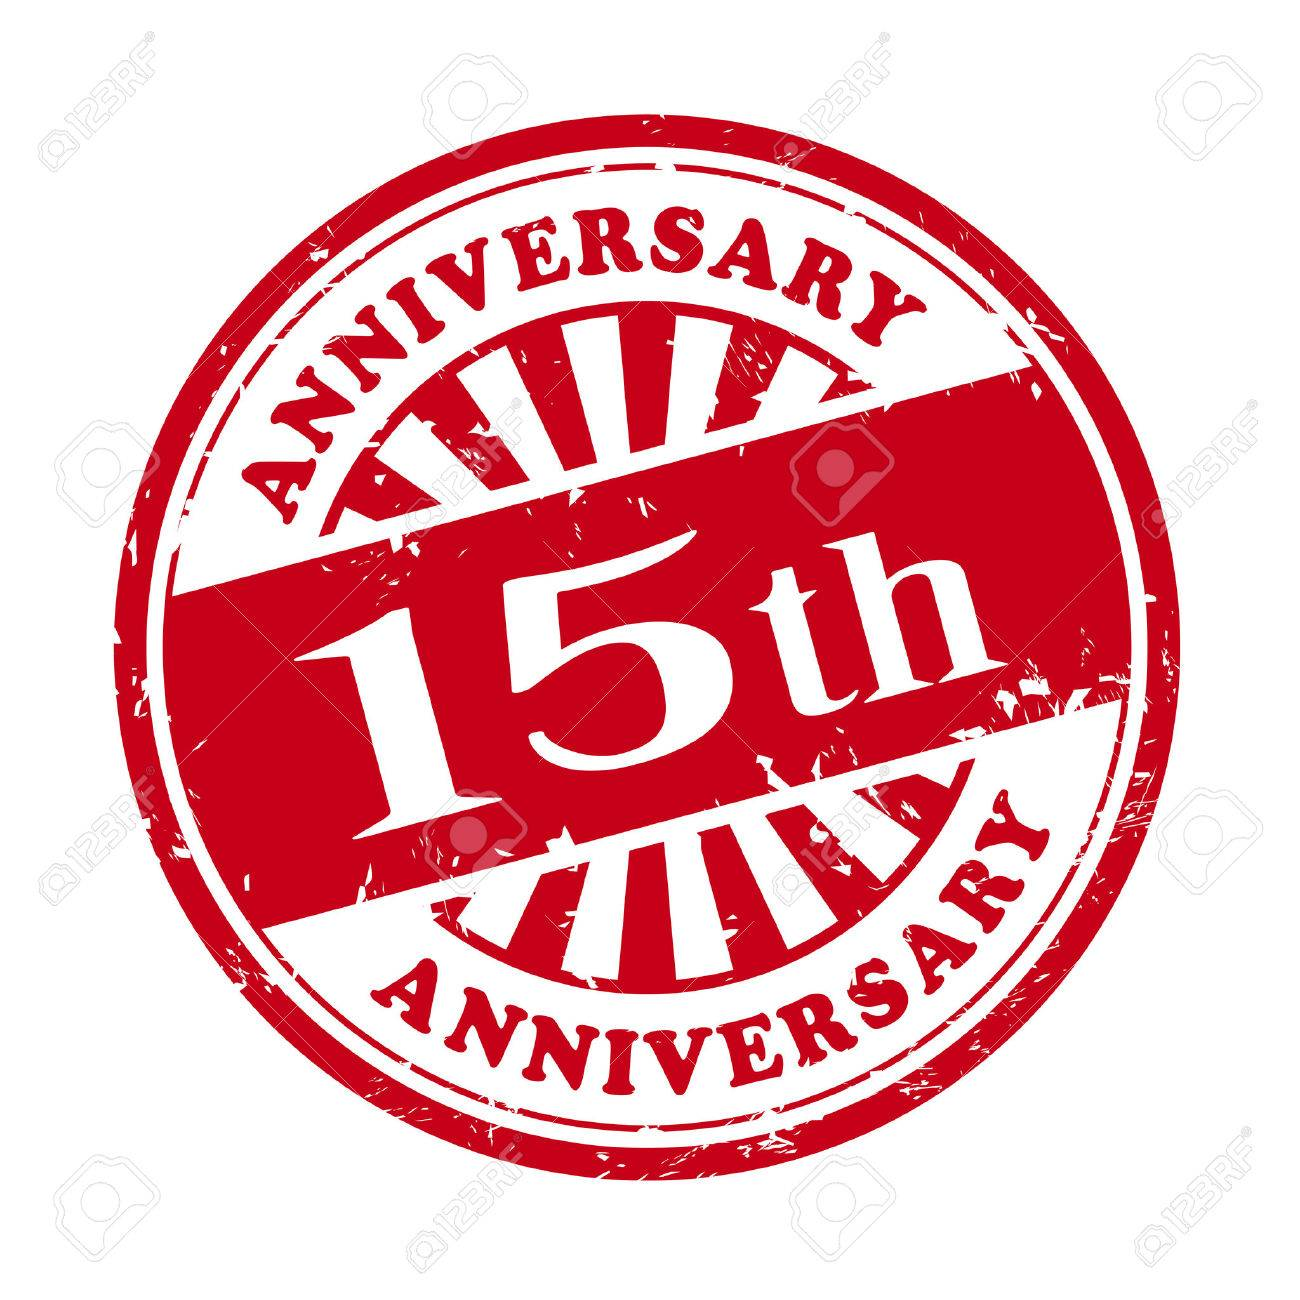 illustration of grunge rubber stamp with the text 15th anniversary